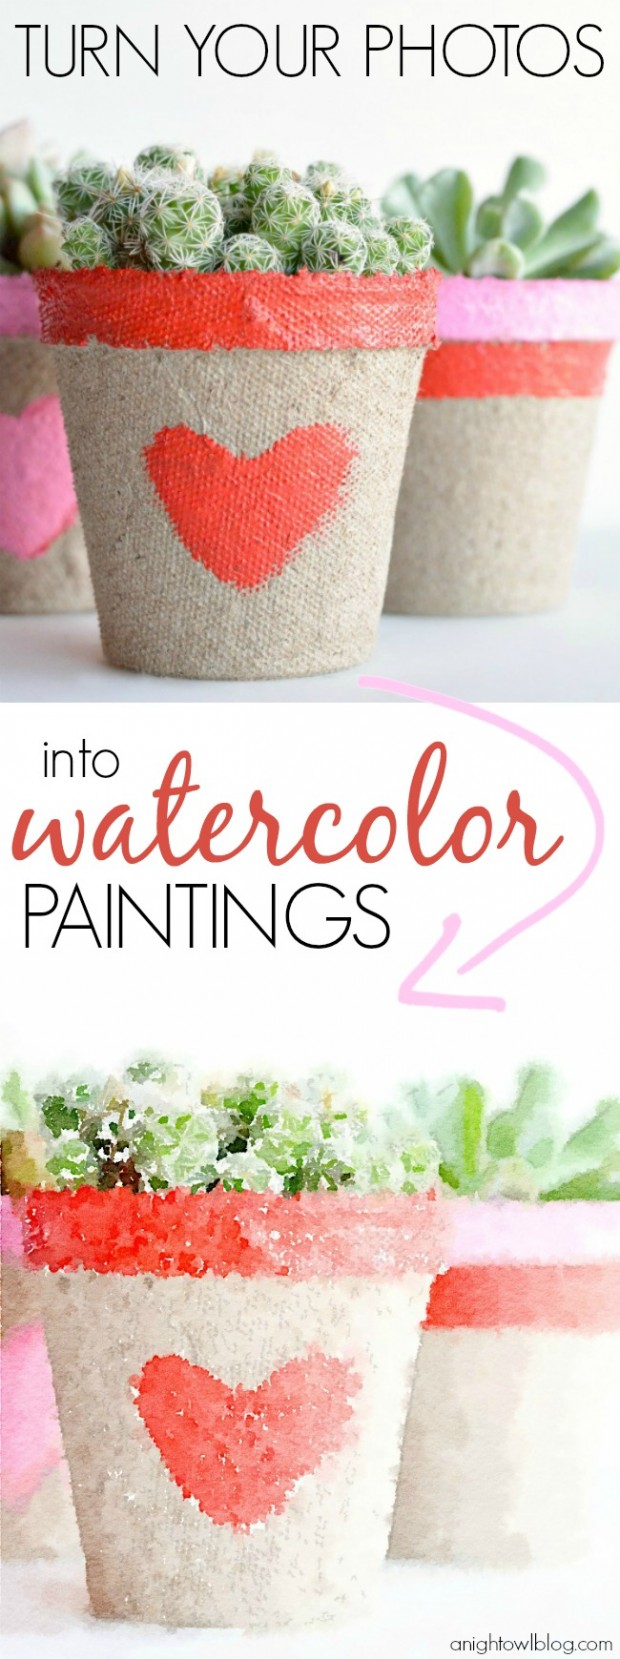 17 Creative DIY Projects for Unique Decorations for Your Home (12)